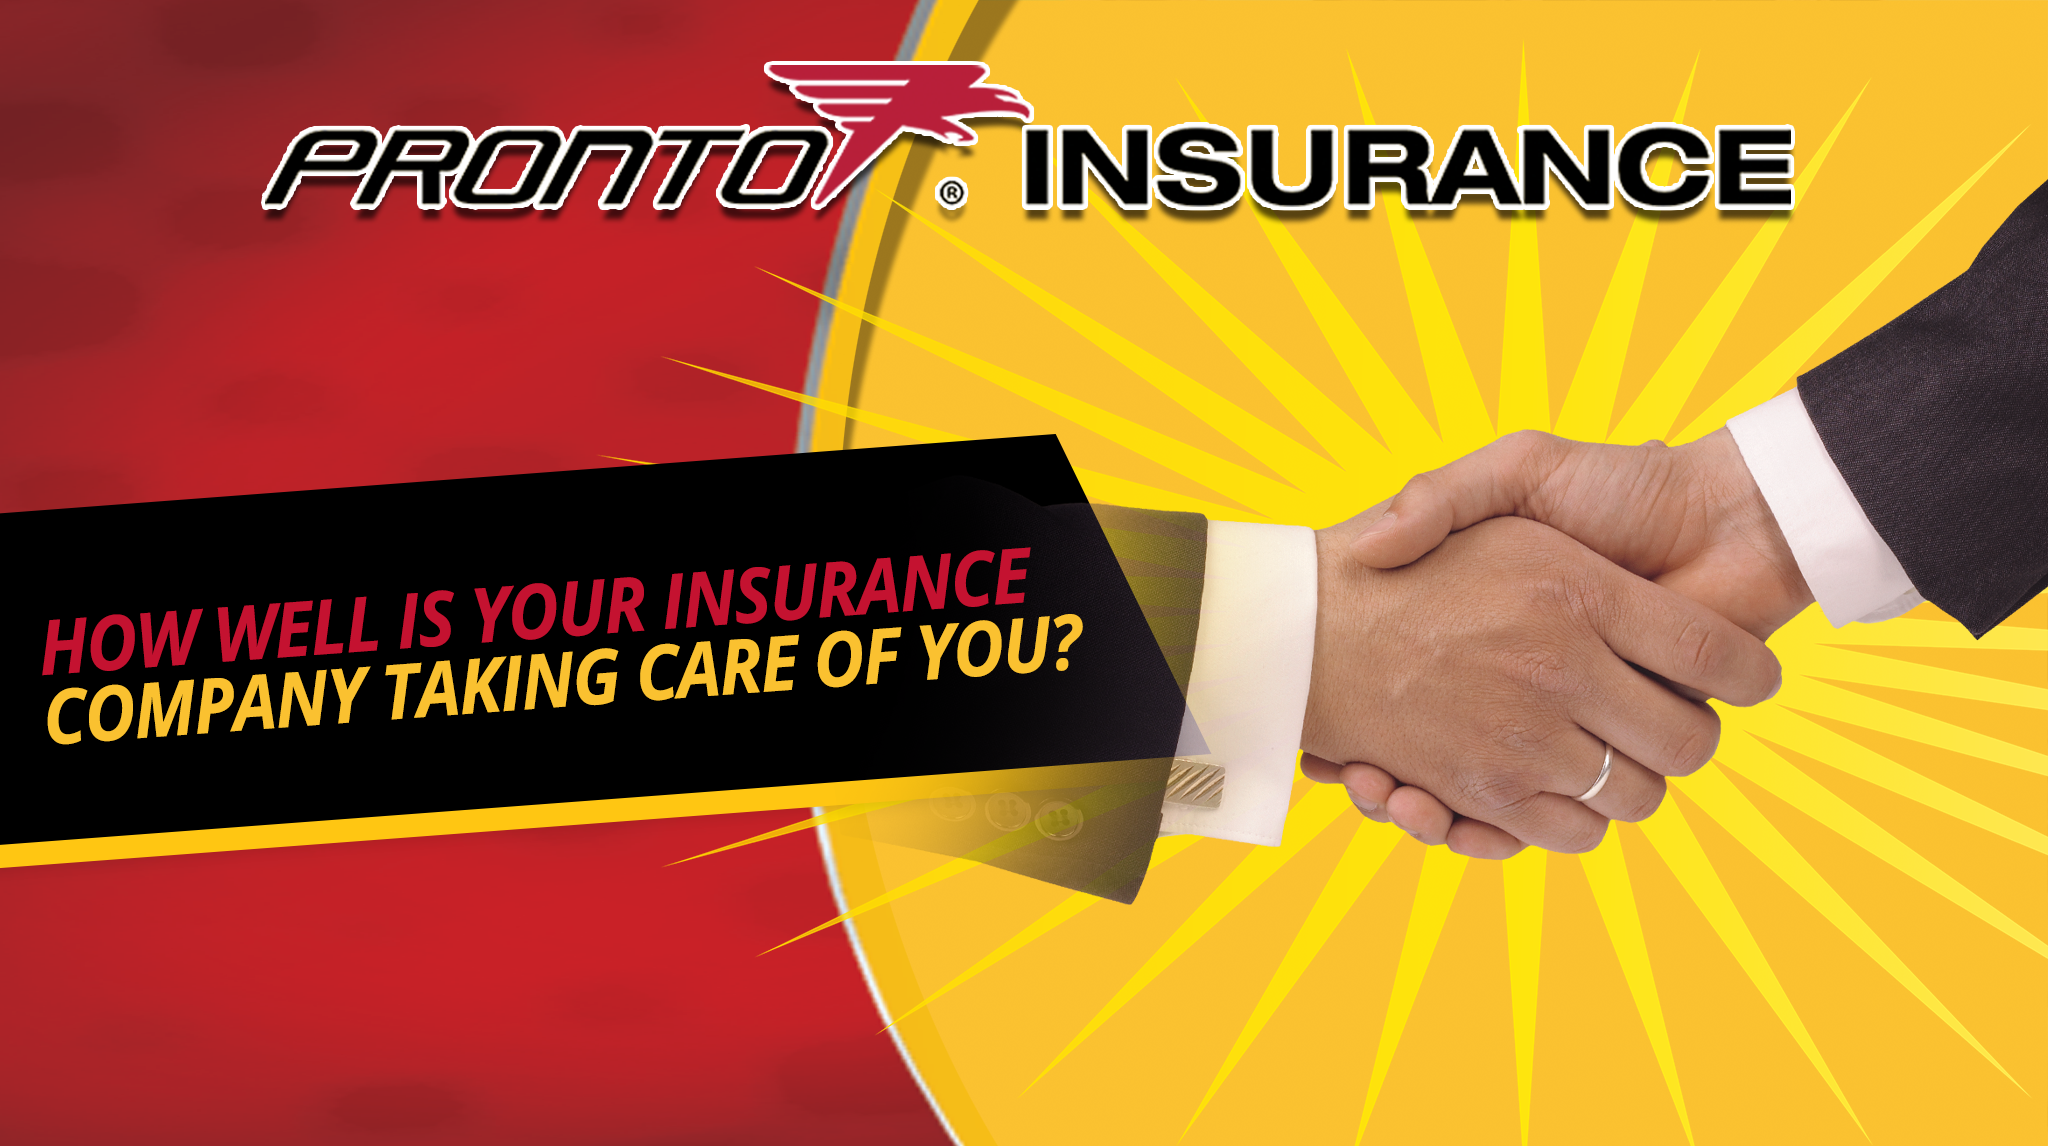 How Well is Your Insurance Company Taking Care of You?